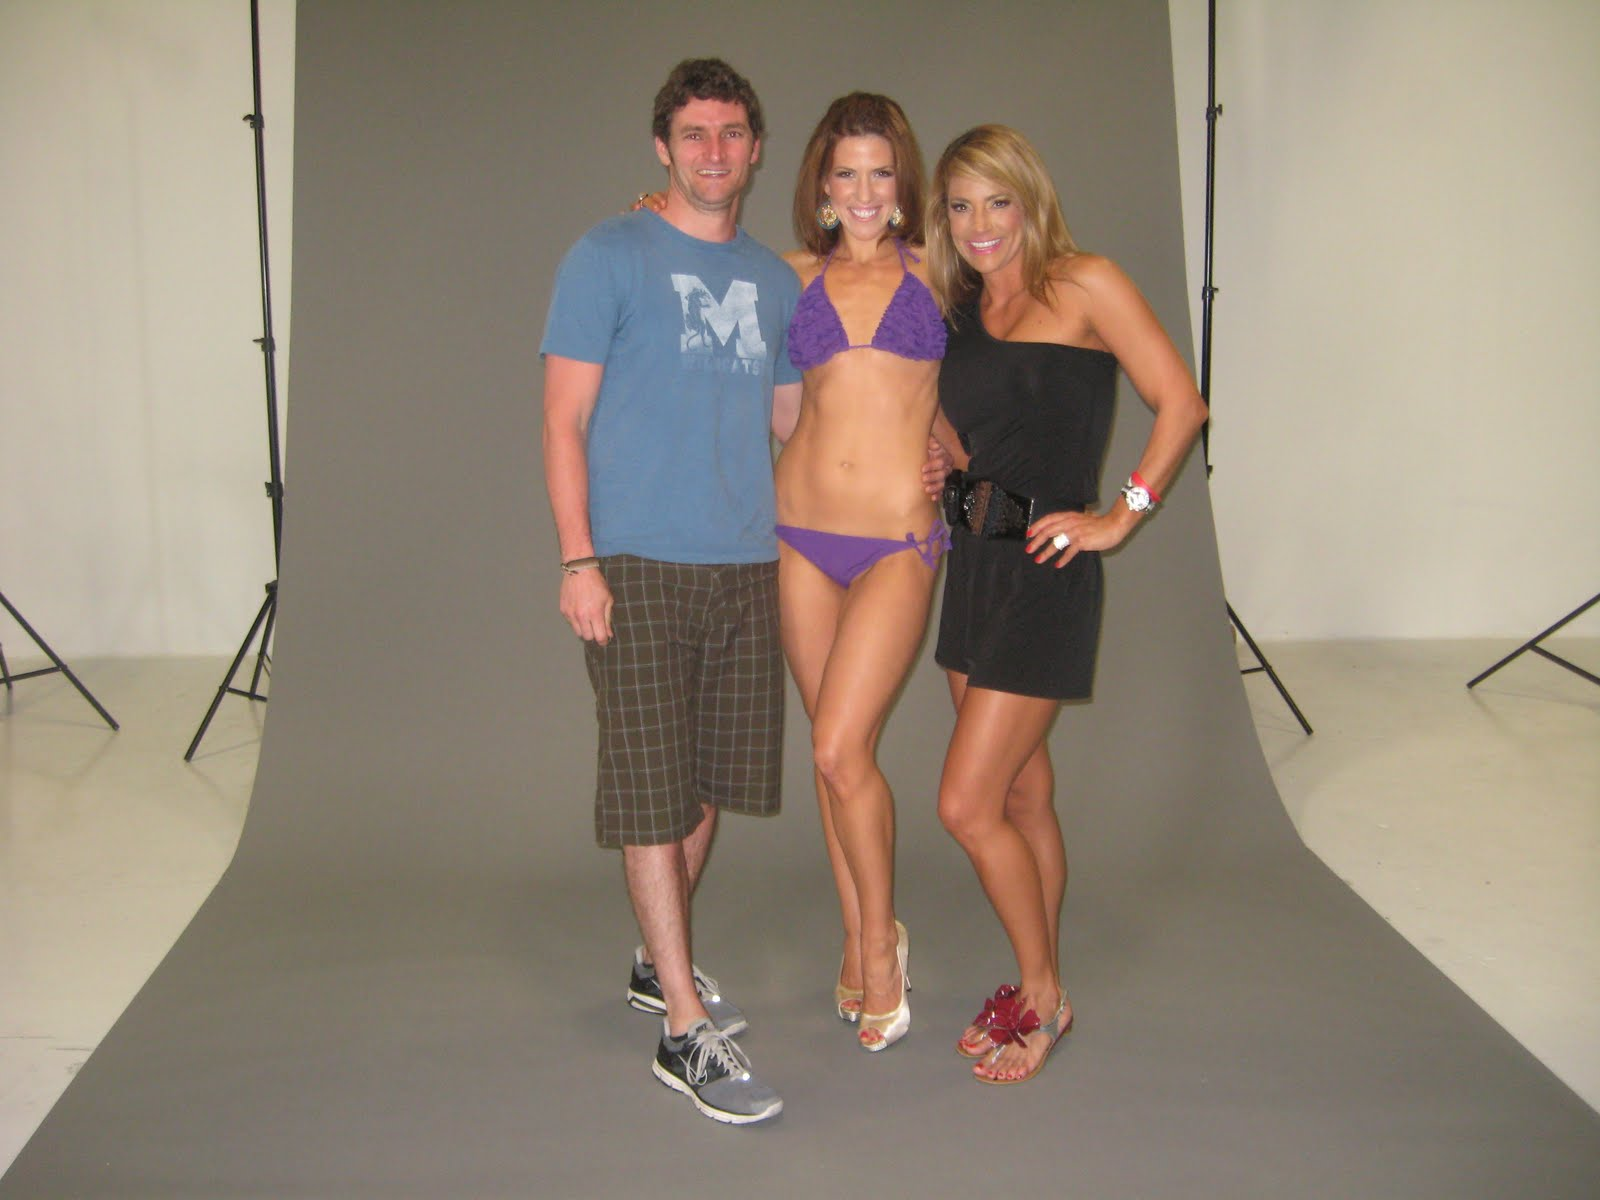 Jnl Fusion Dvd Collection Coming Fall 2011 Featuring Jnl Misty Gates